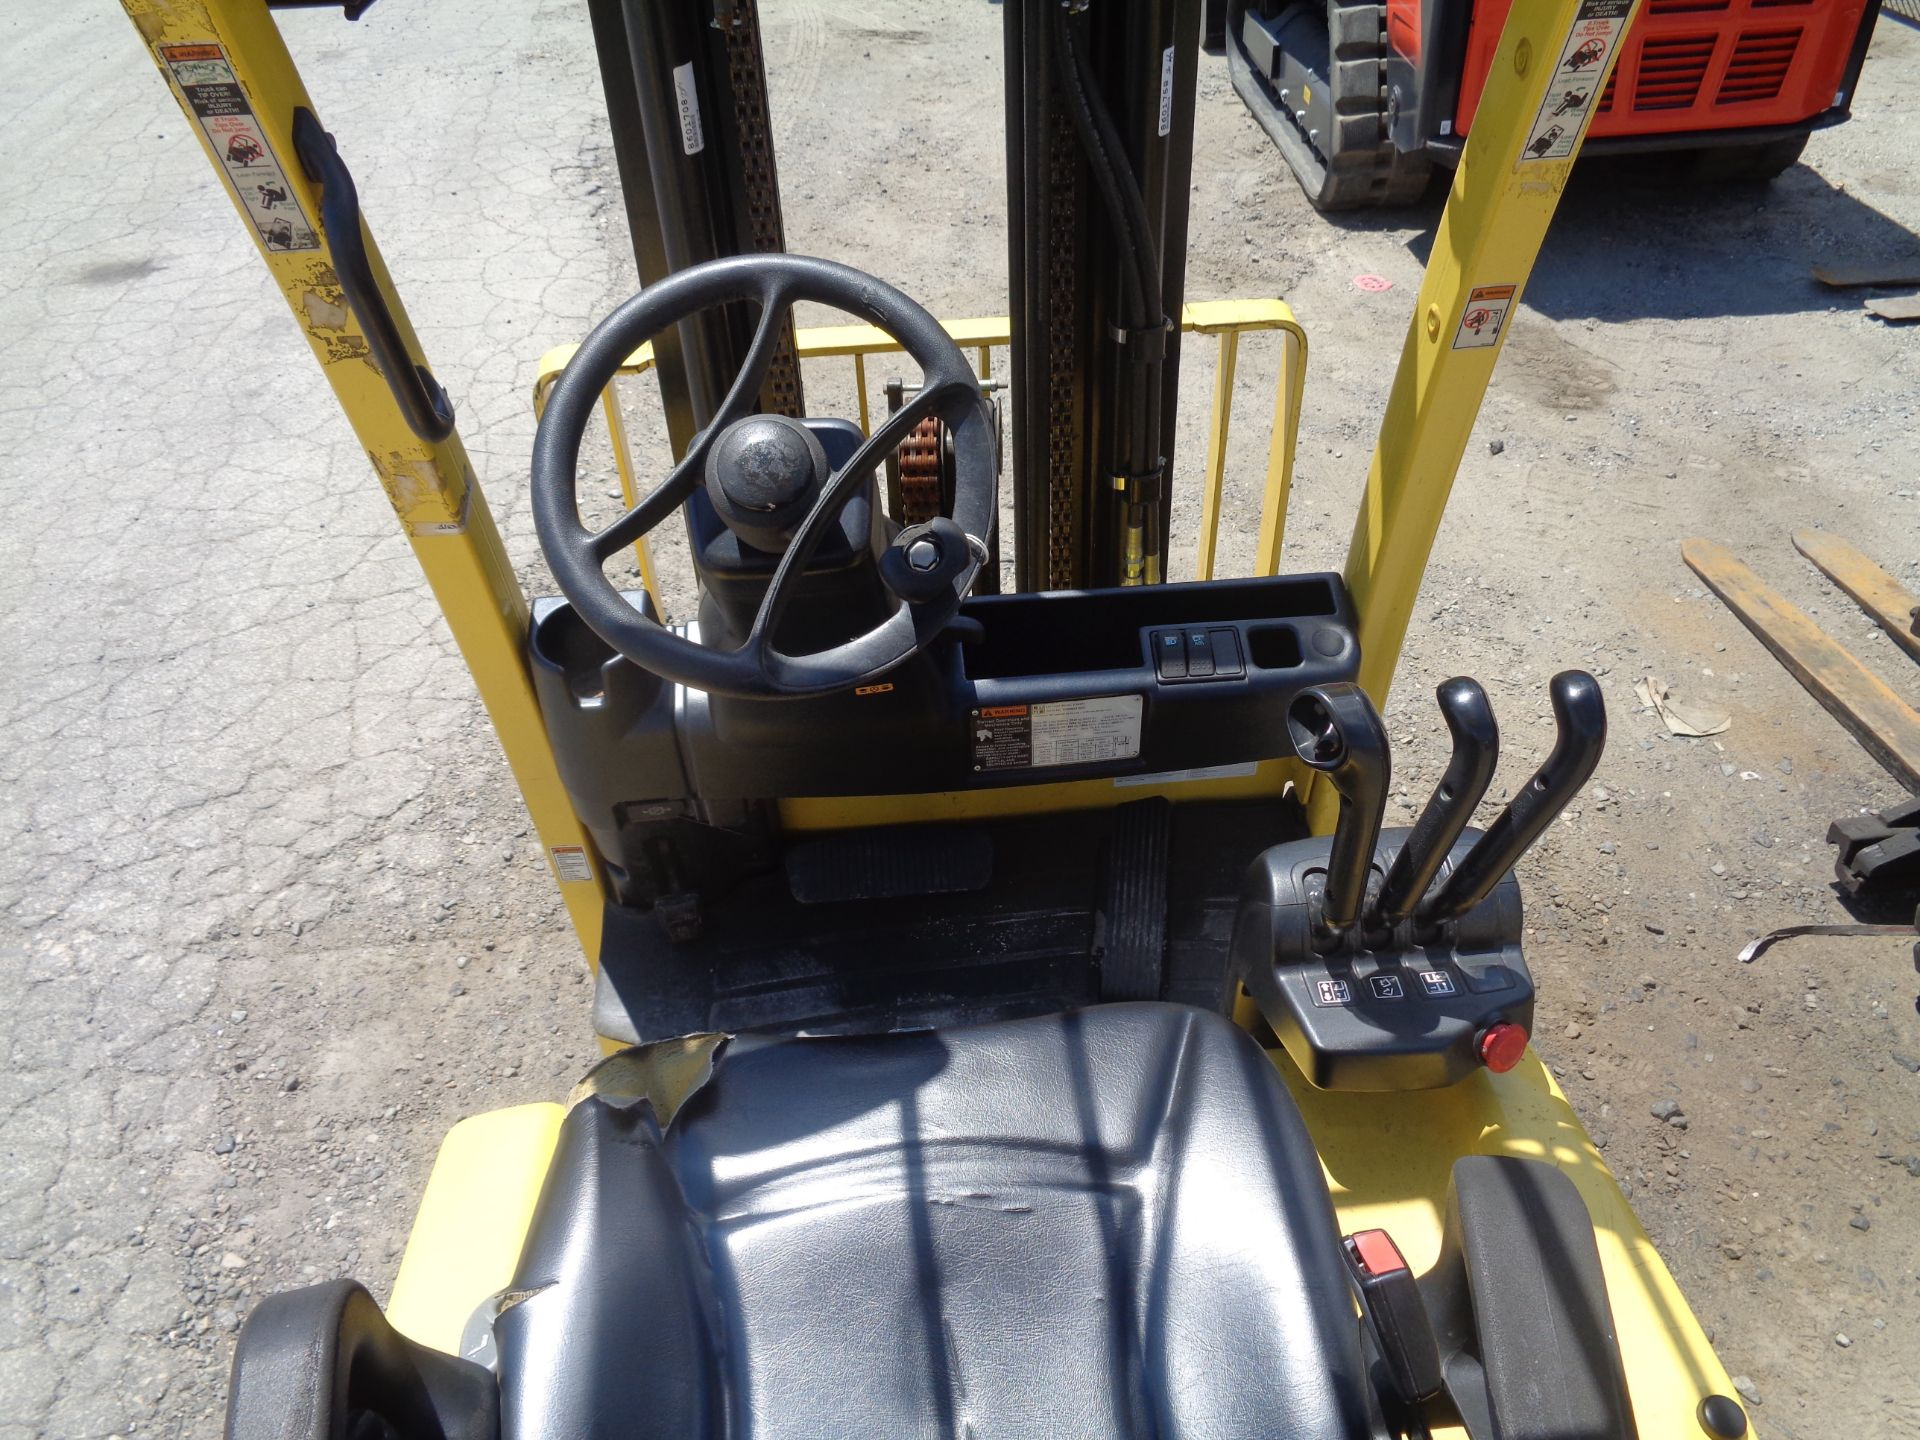 2016 Hyster E30XN 3,000lb Forklift - Image 16 of 18